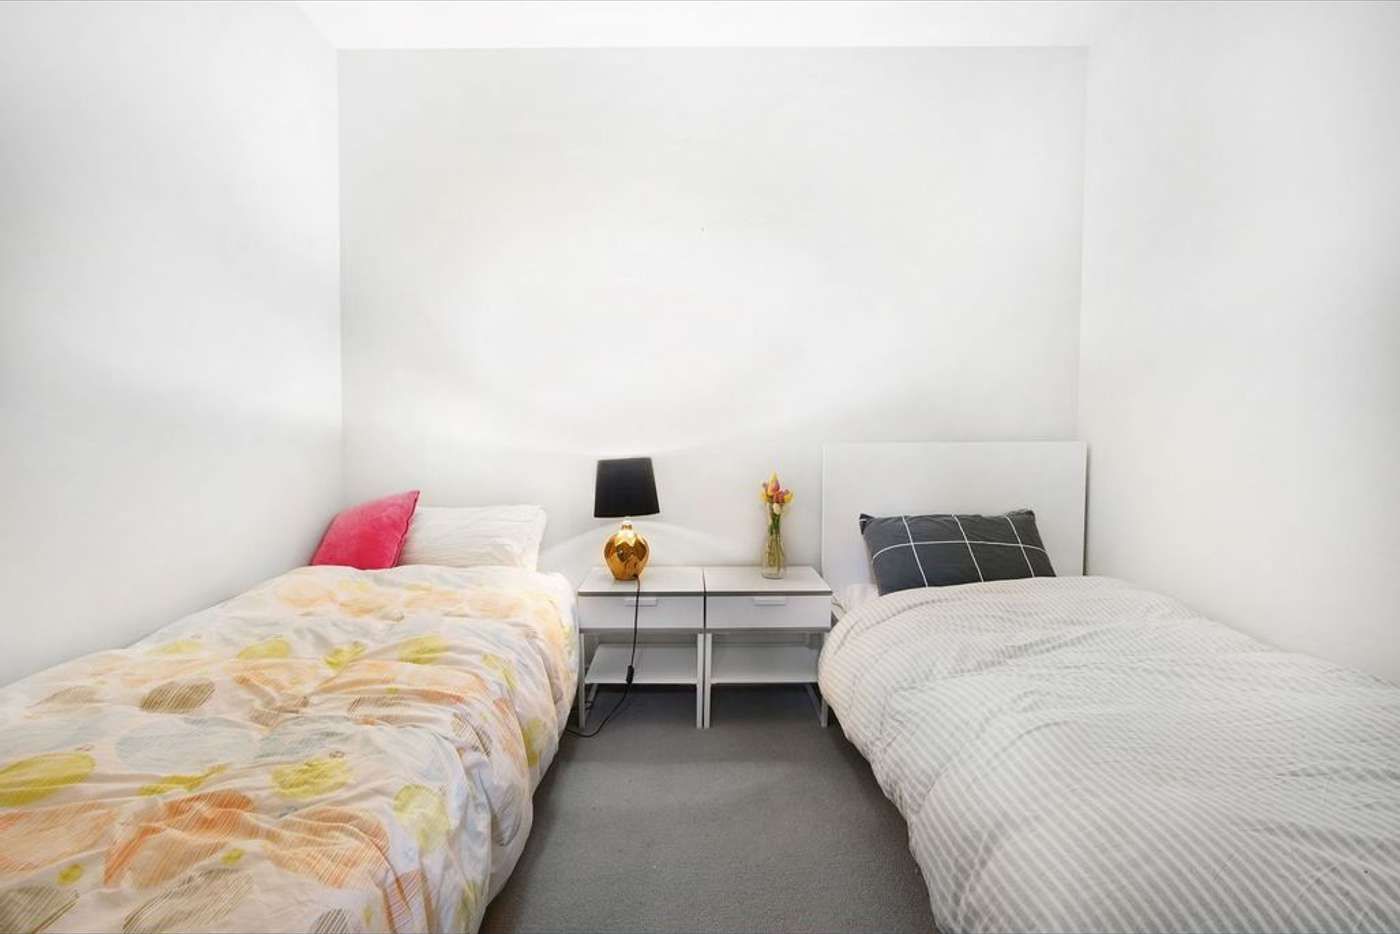 Seventh view of Homely apartment listing, 2402/568 Collins Street, Melbourne VIC 3000